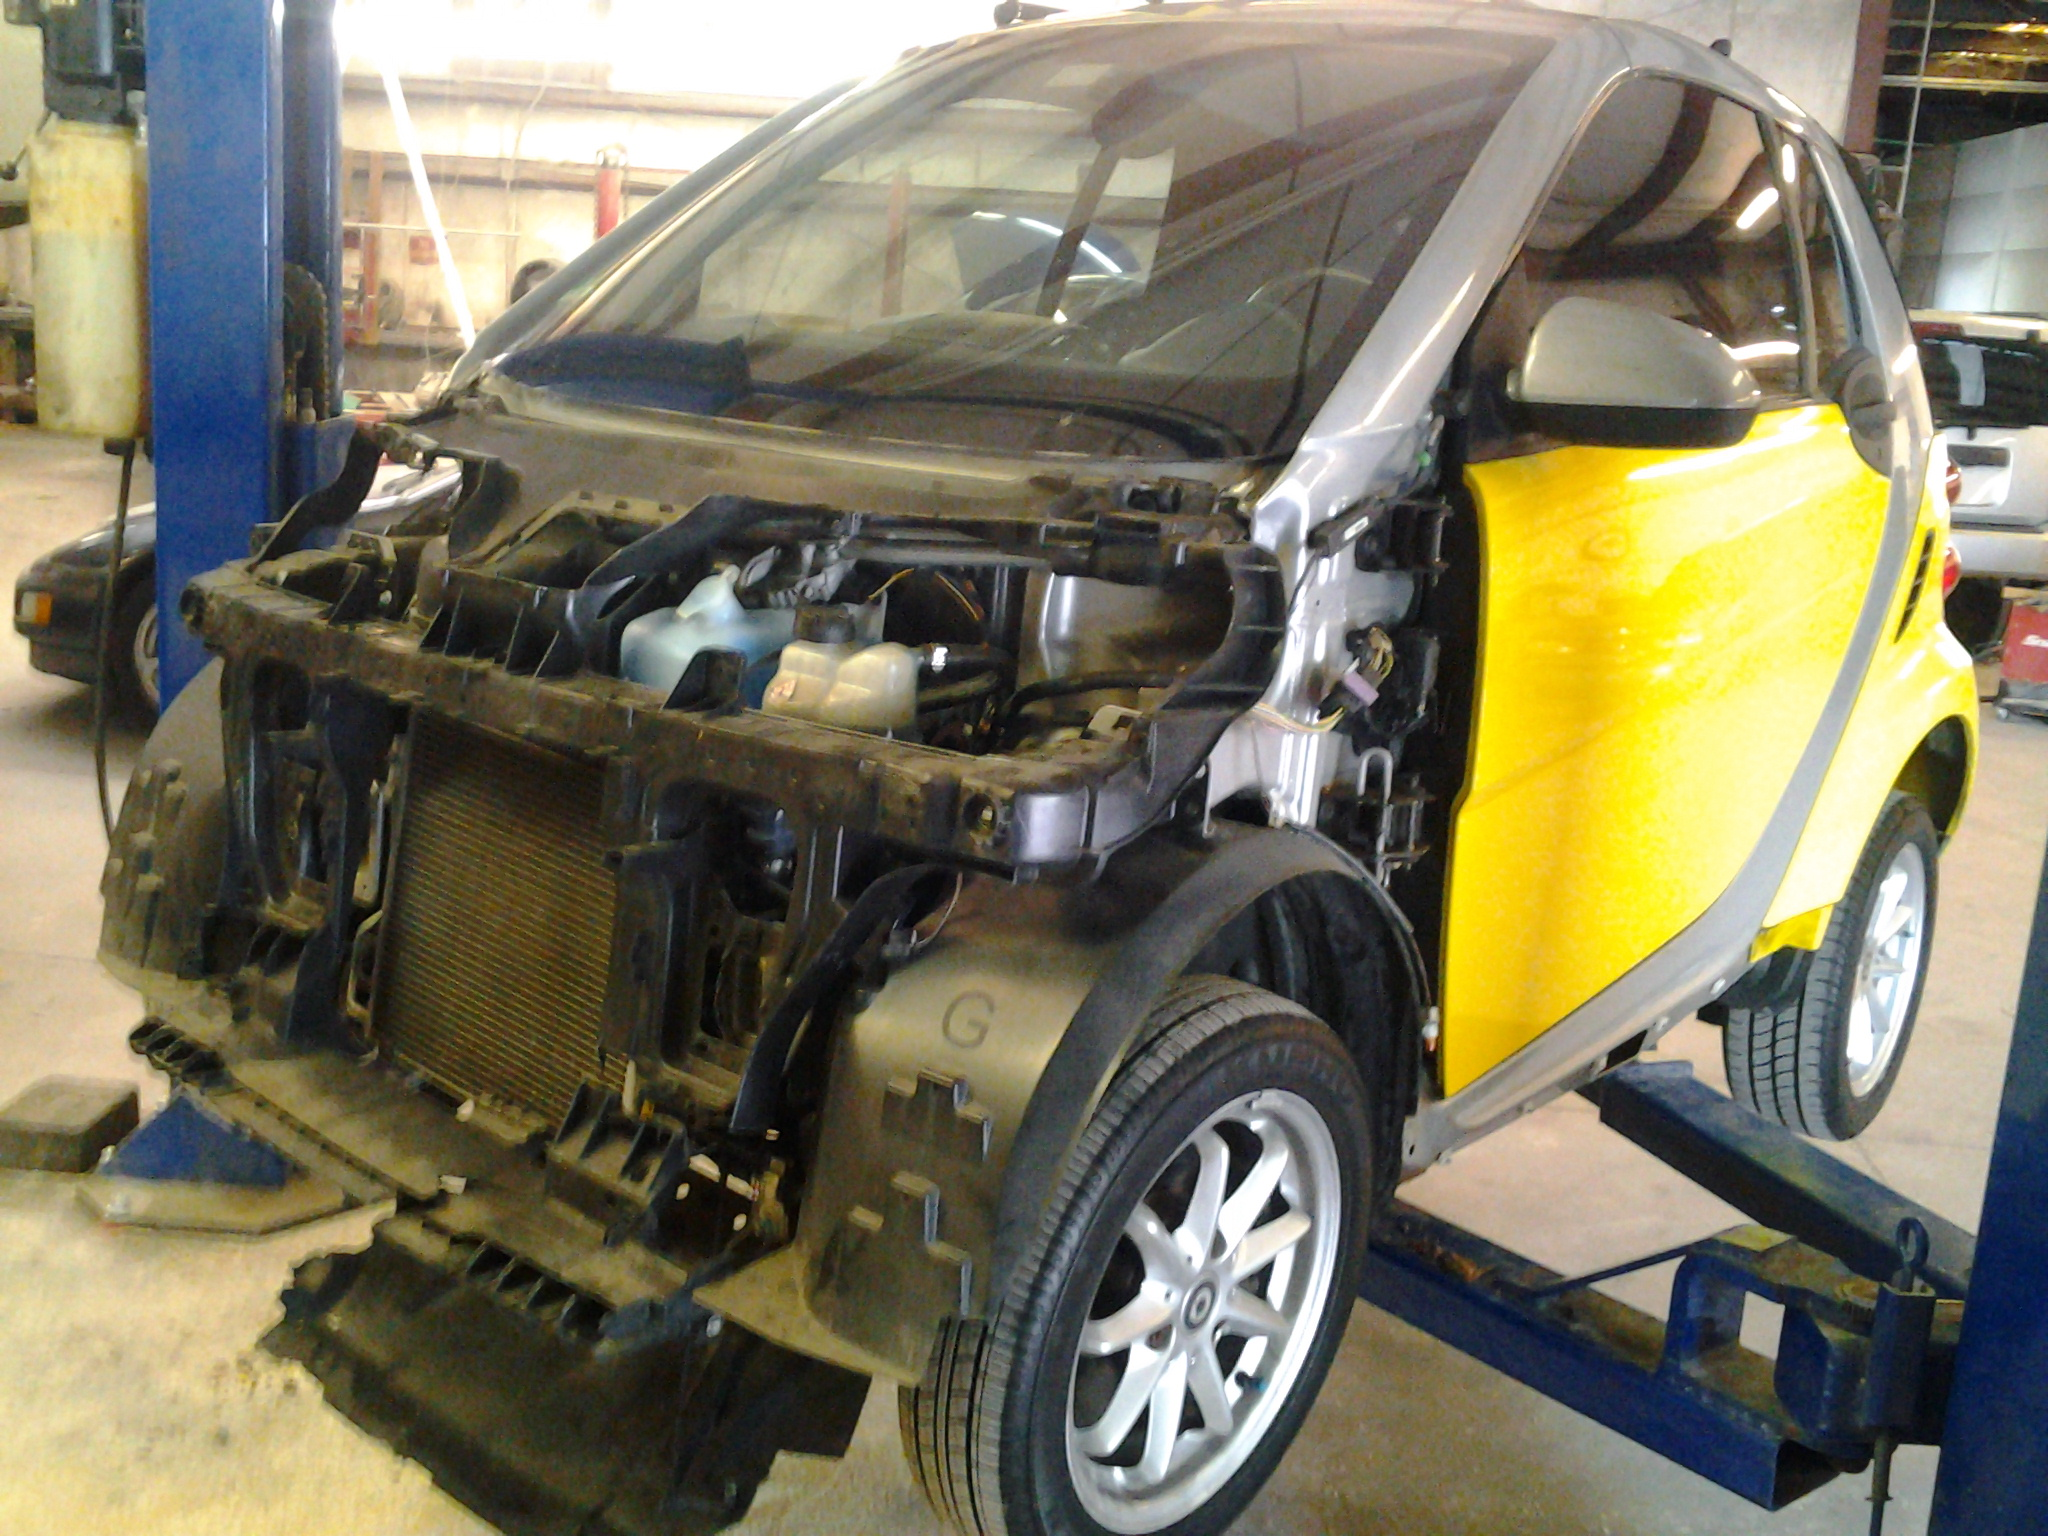 Guy's Automotive's Body Shop Tampa offers Smart auto body collision repair work in Tampa, Florida